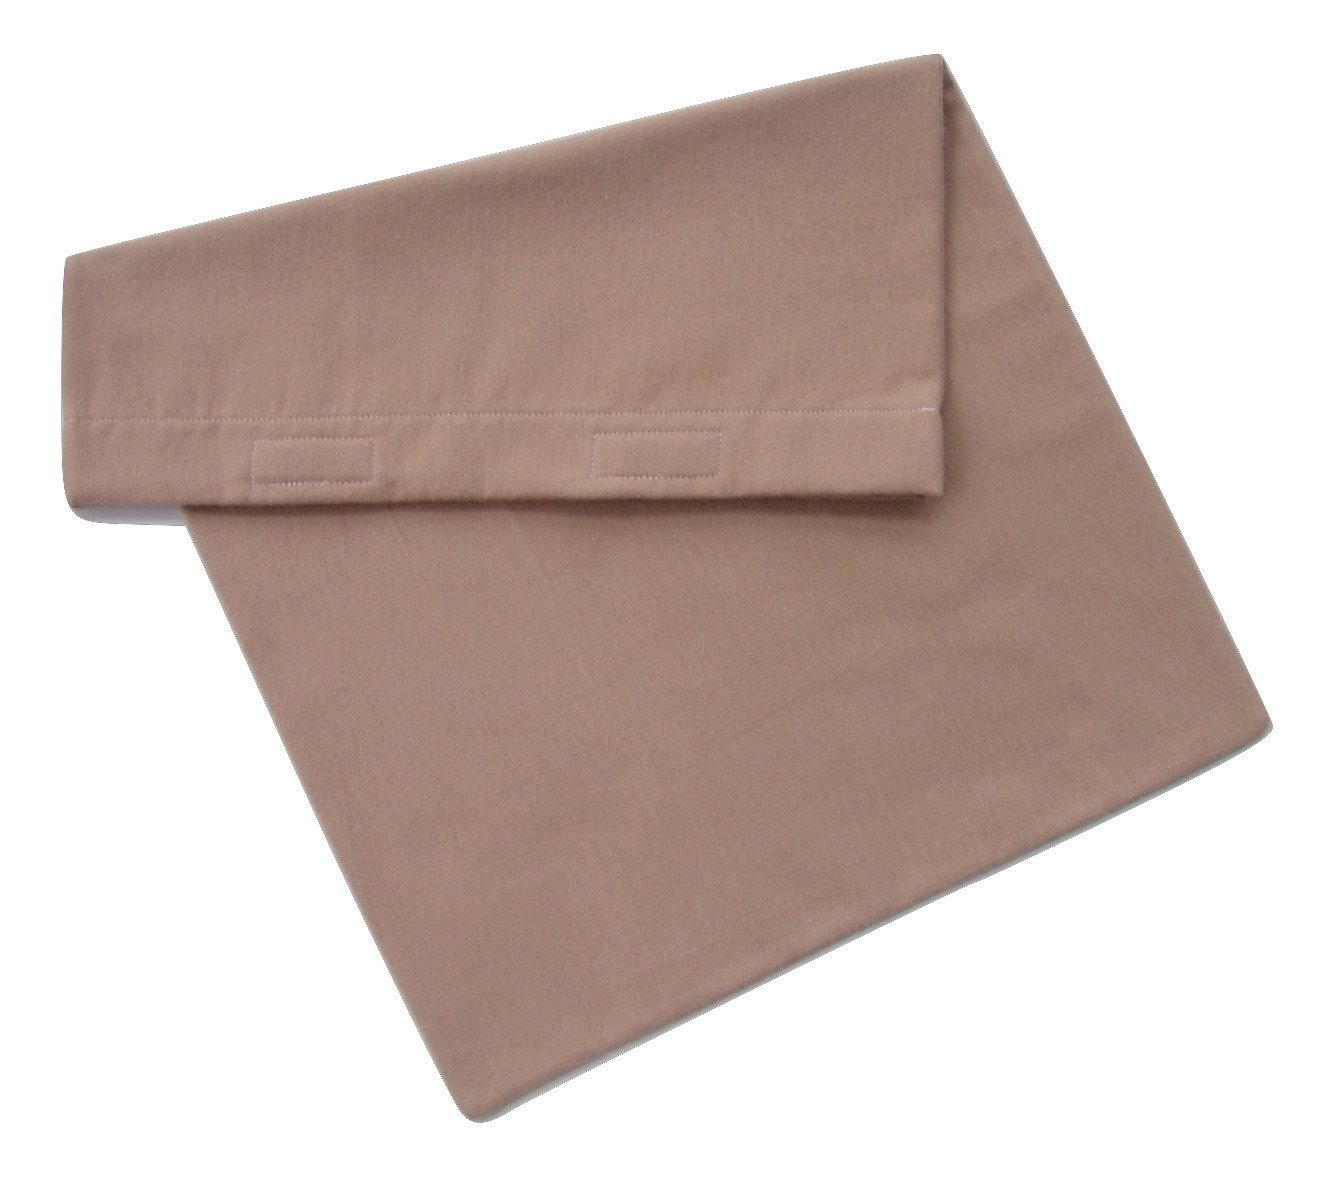 """12""""x24"""" Flannel Replacement Heating Pad Cover or Pillowcase. 100% Soft Cotton Flannel"""